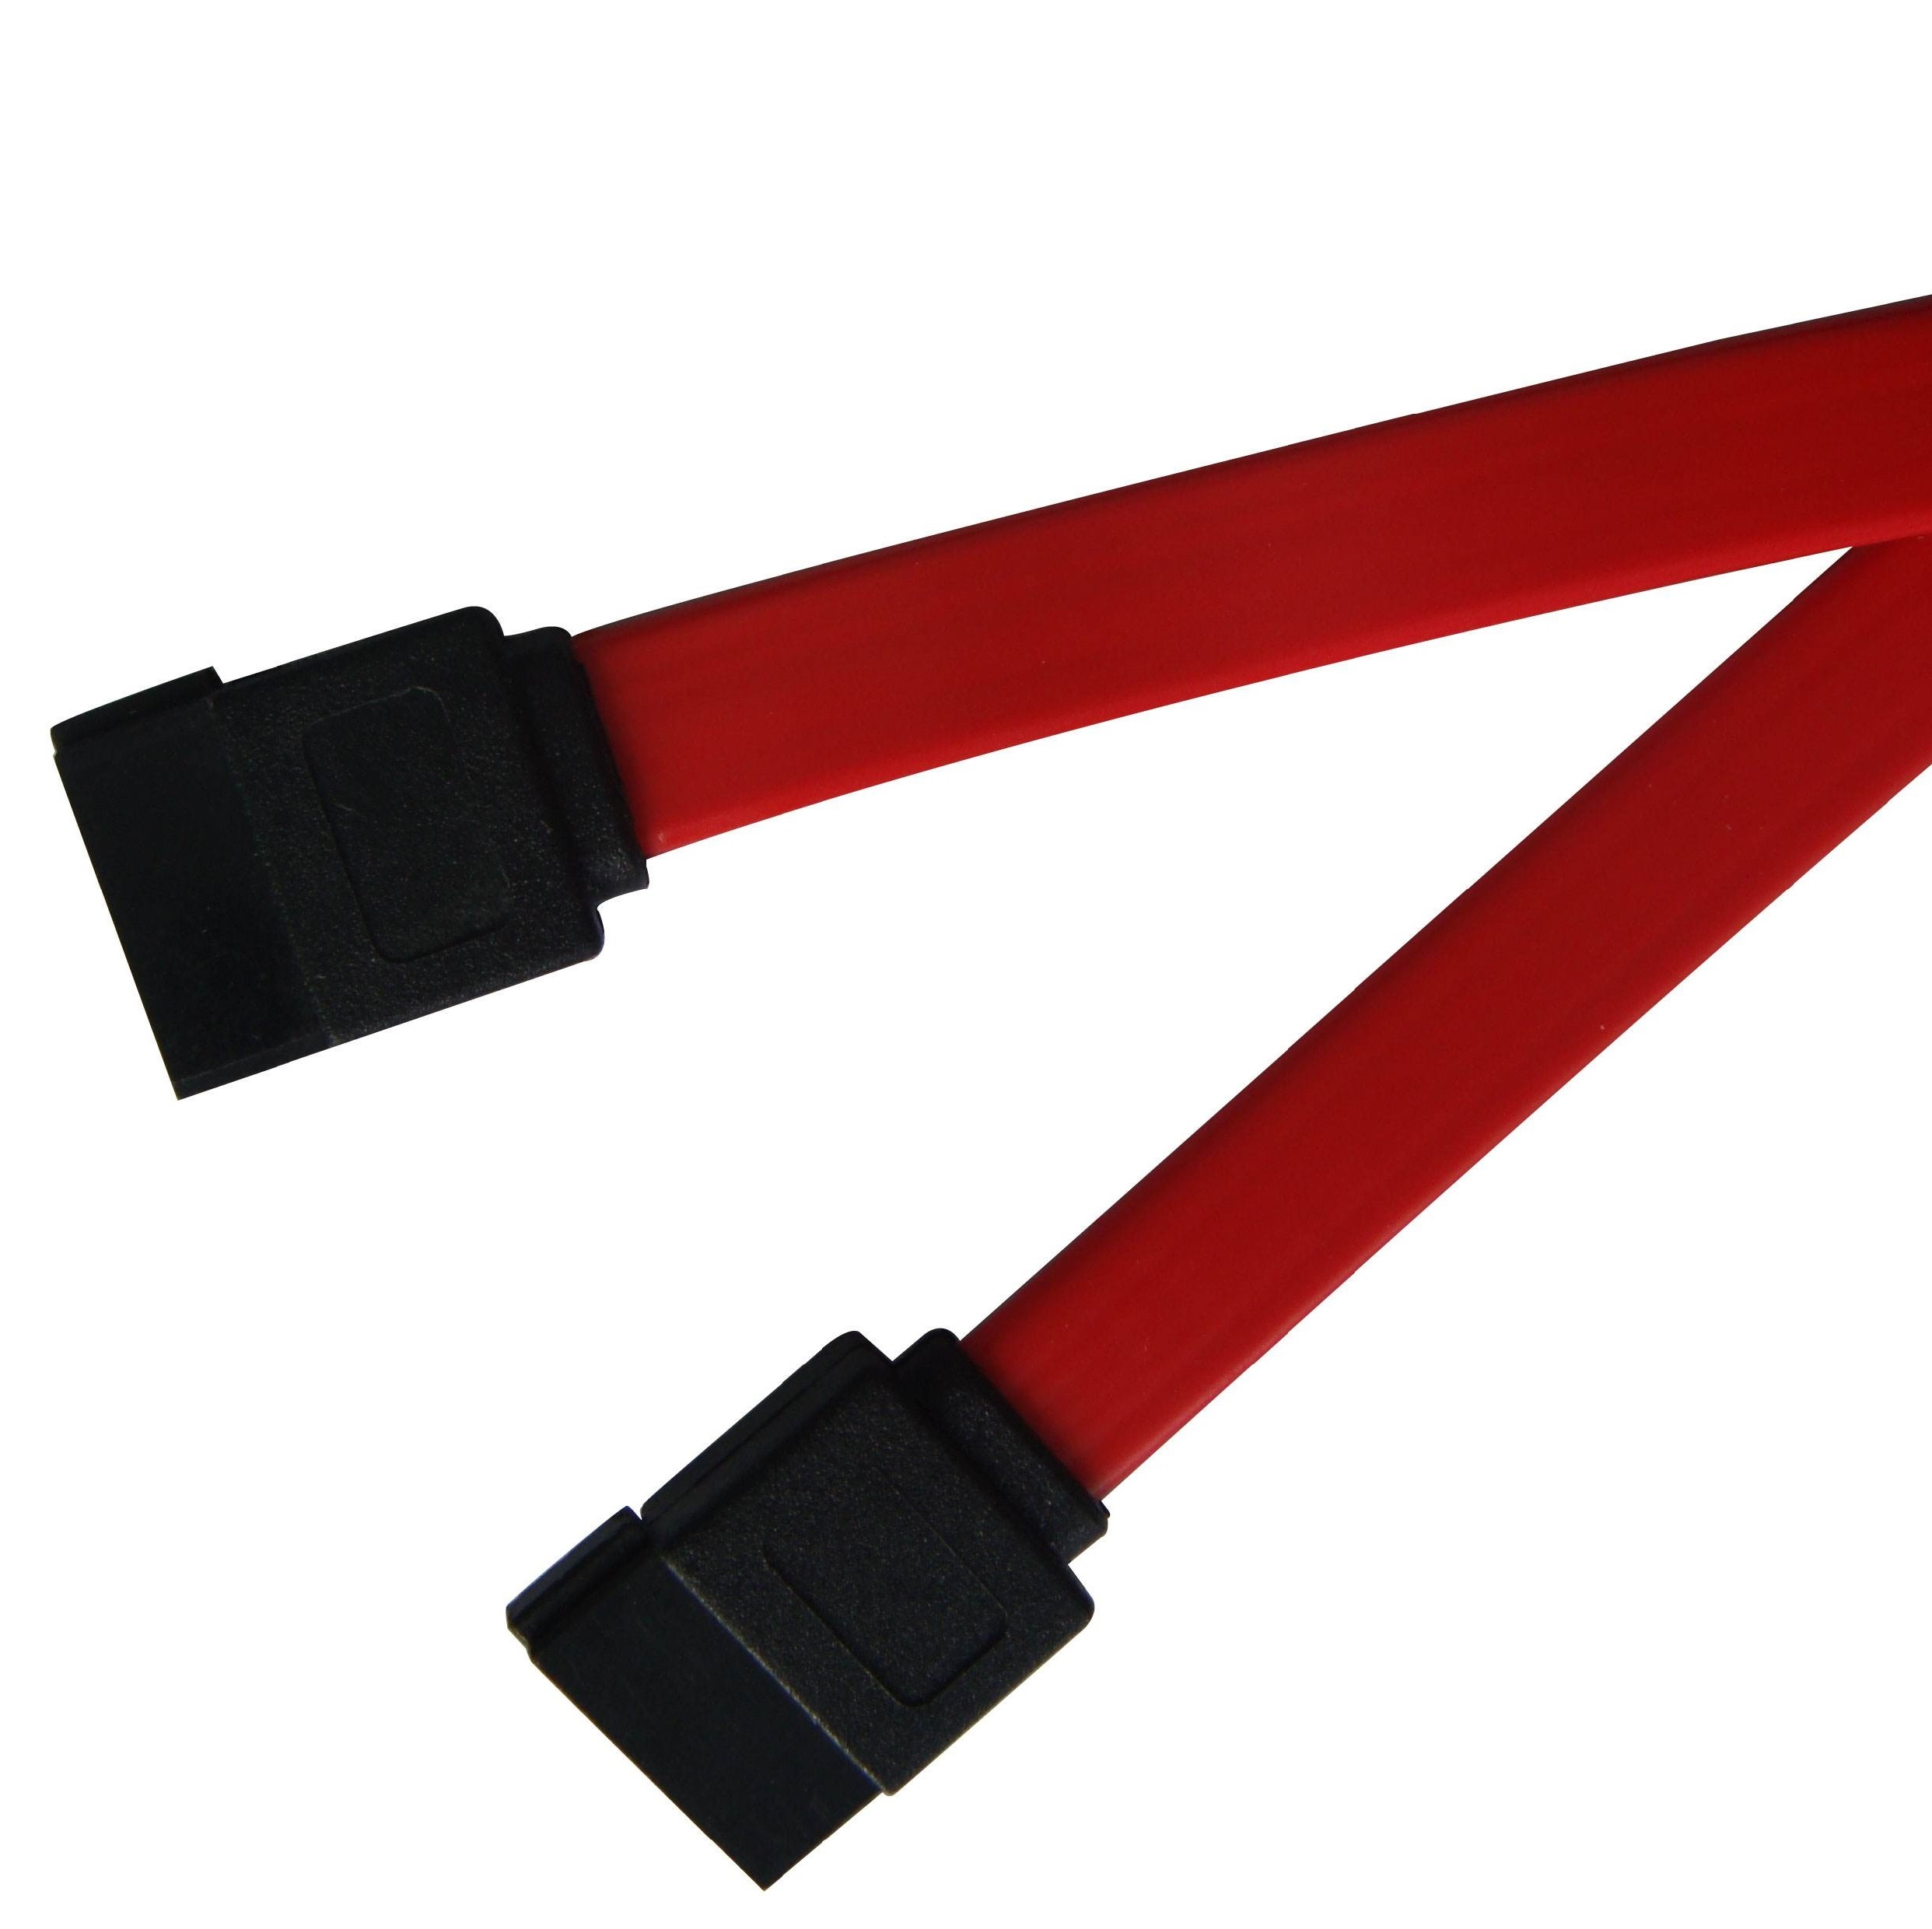 SATA Cable Serial ATA CABLE 7P to 7P